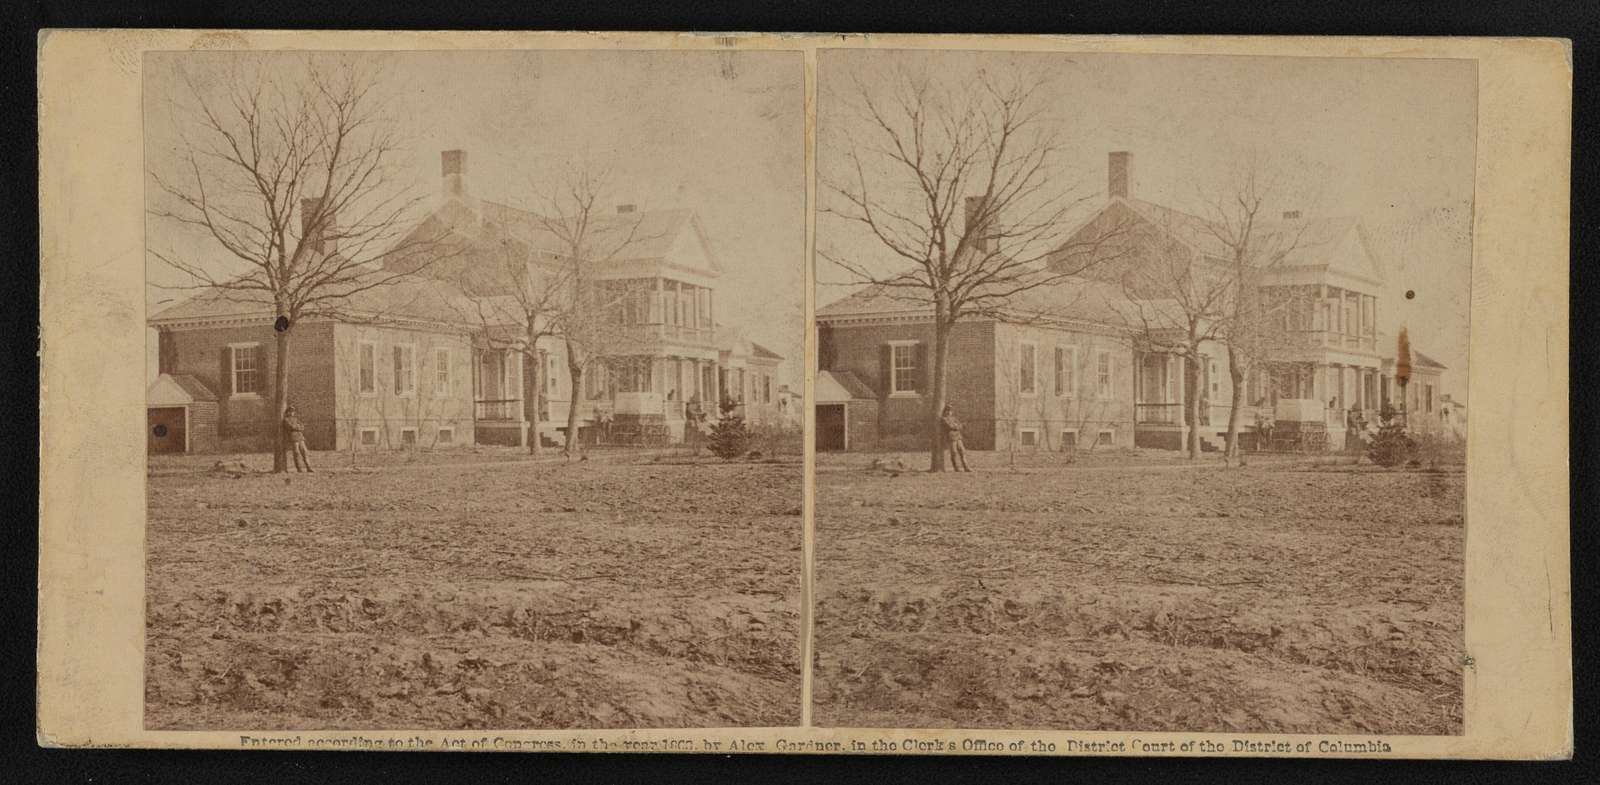 Lacy house, Falmouth, Va., March, 1863